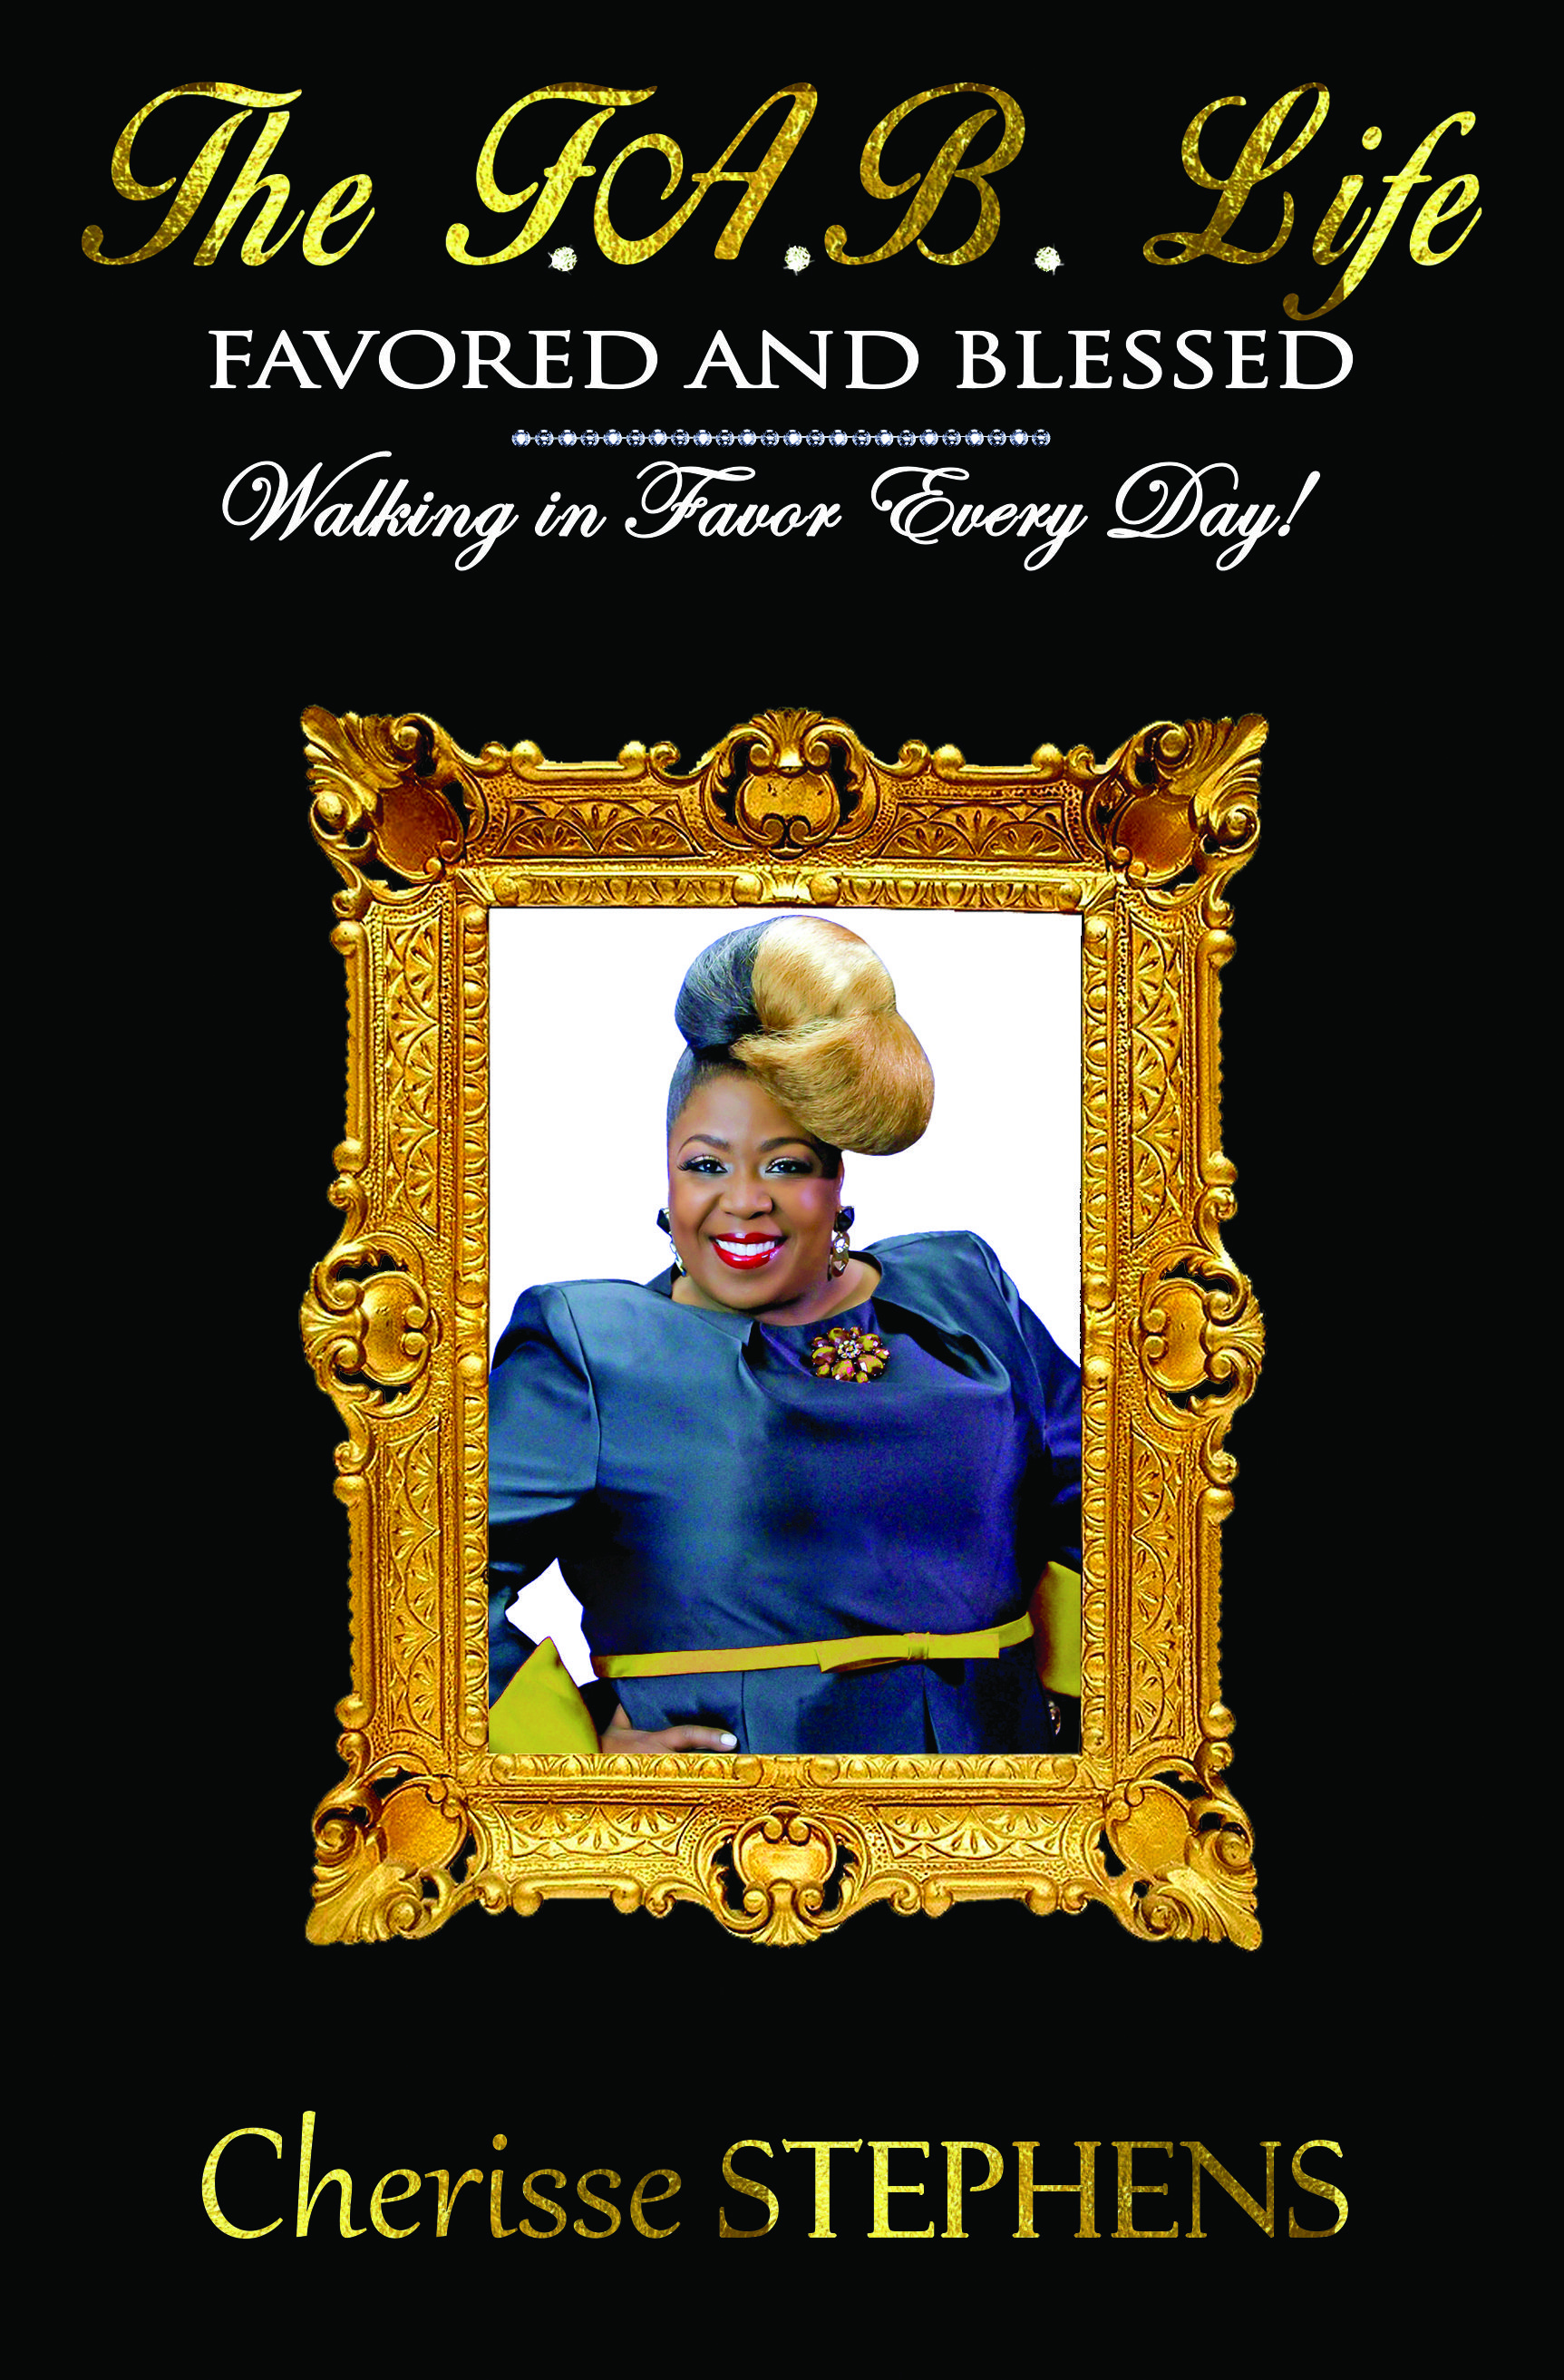 Get your copies of the latest book from author, Cherisse